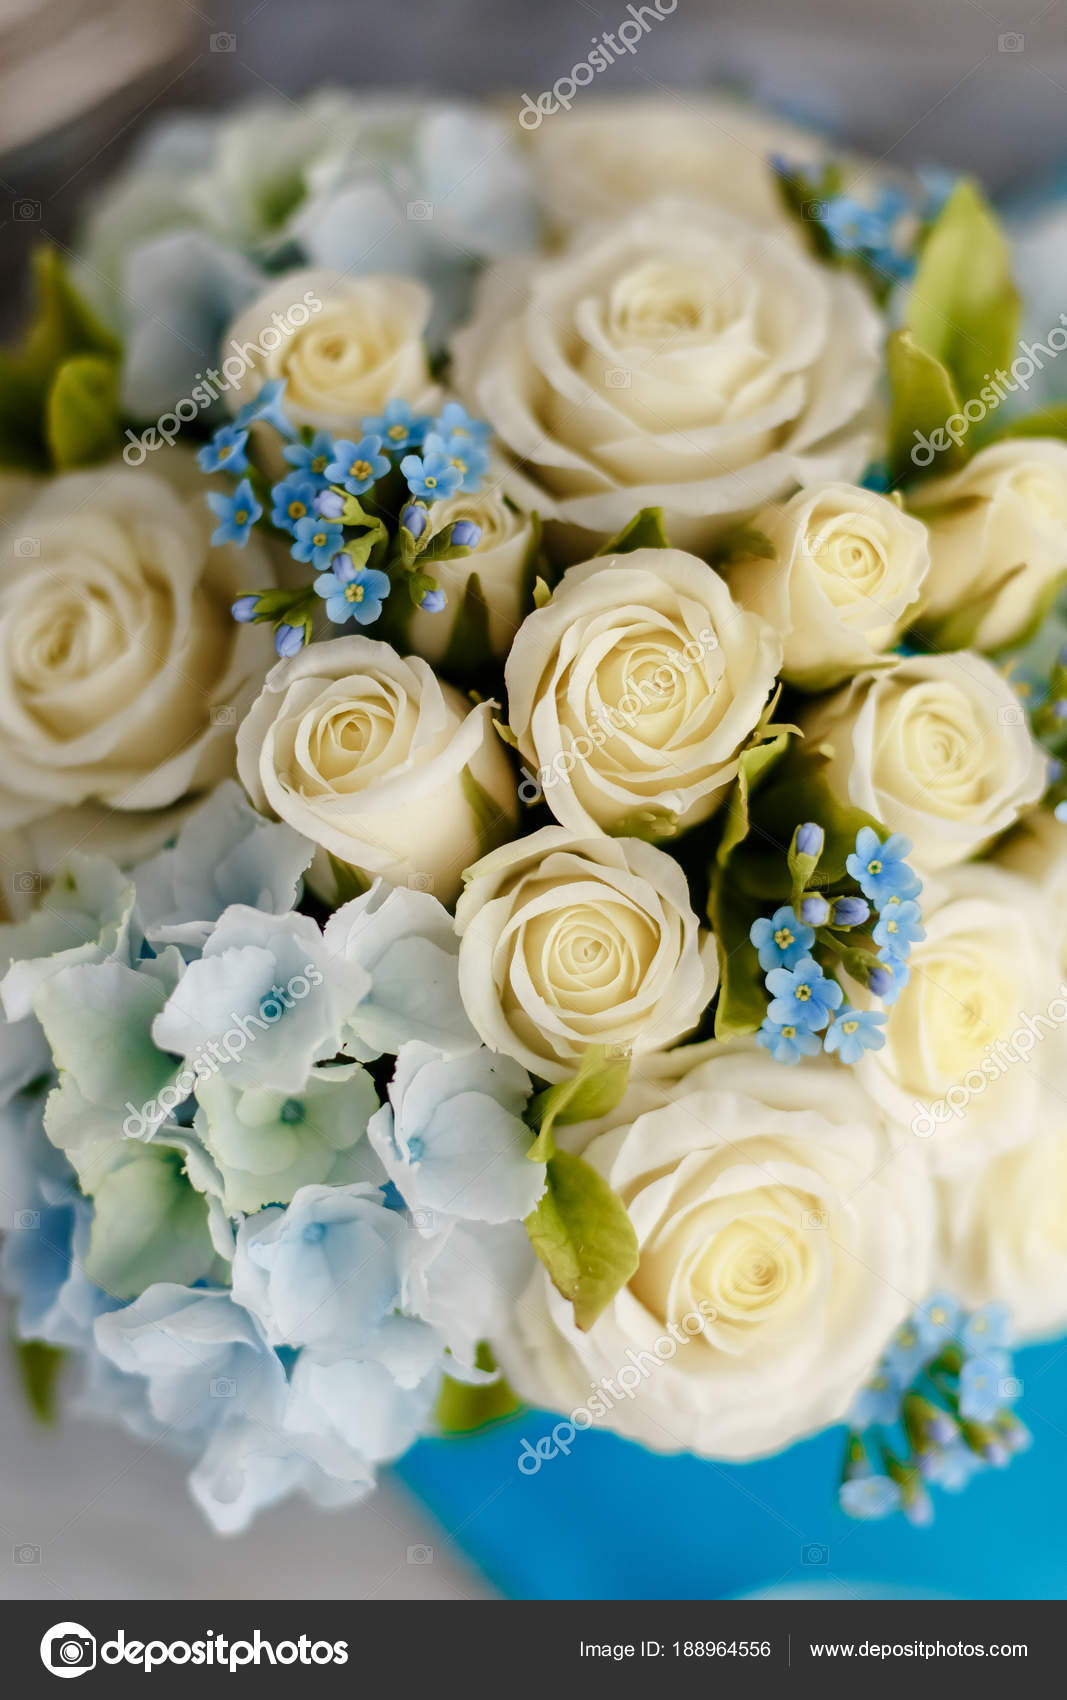 Exquisite Spring Bouquet Blue White Wedding Flowers Wedding Floral ...